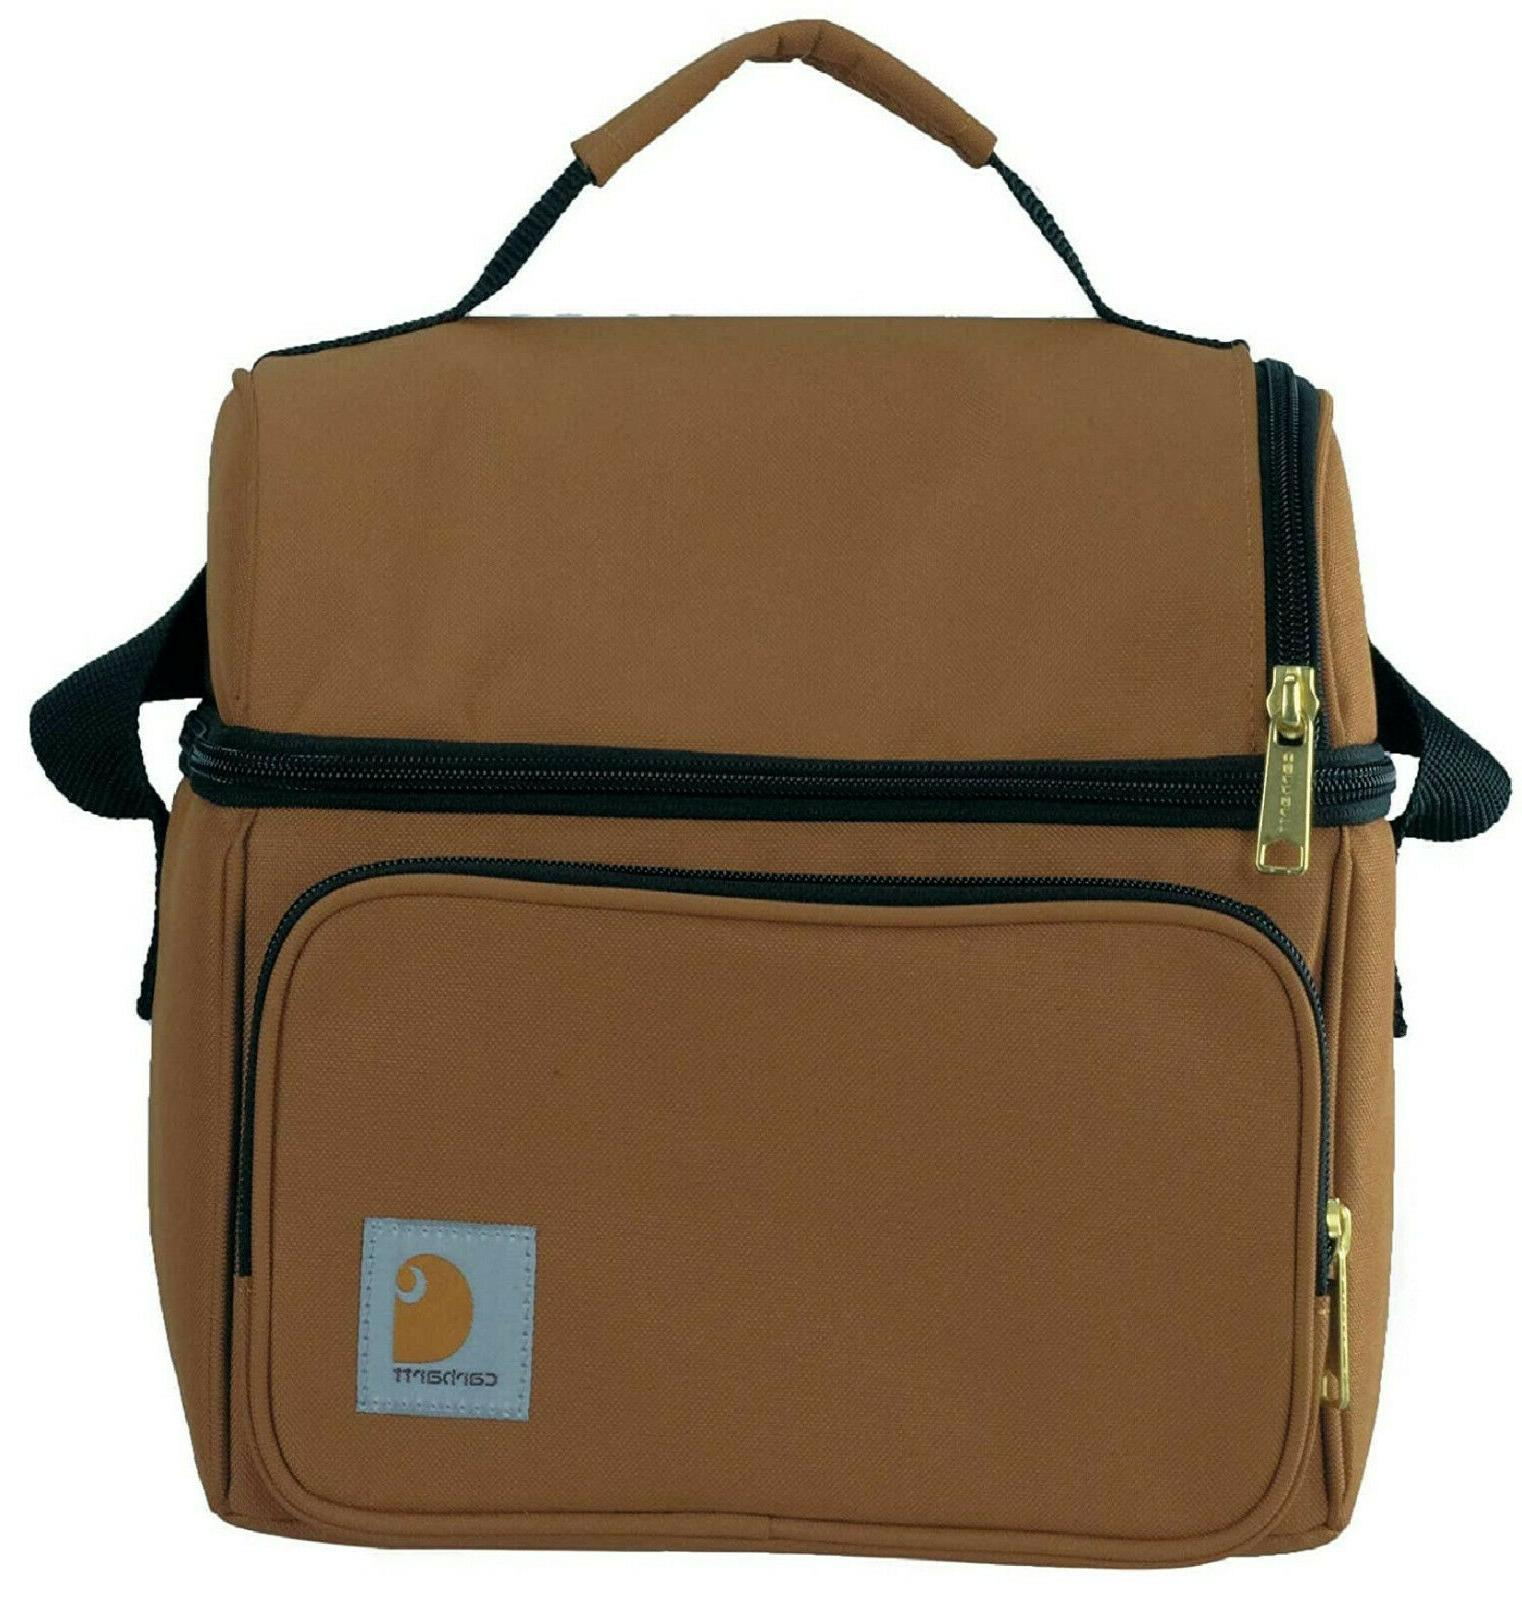 Deluxe Lunch Cooler Traveling Brown